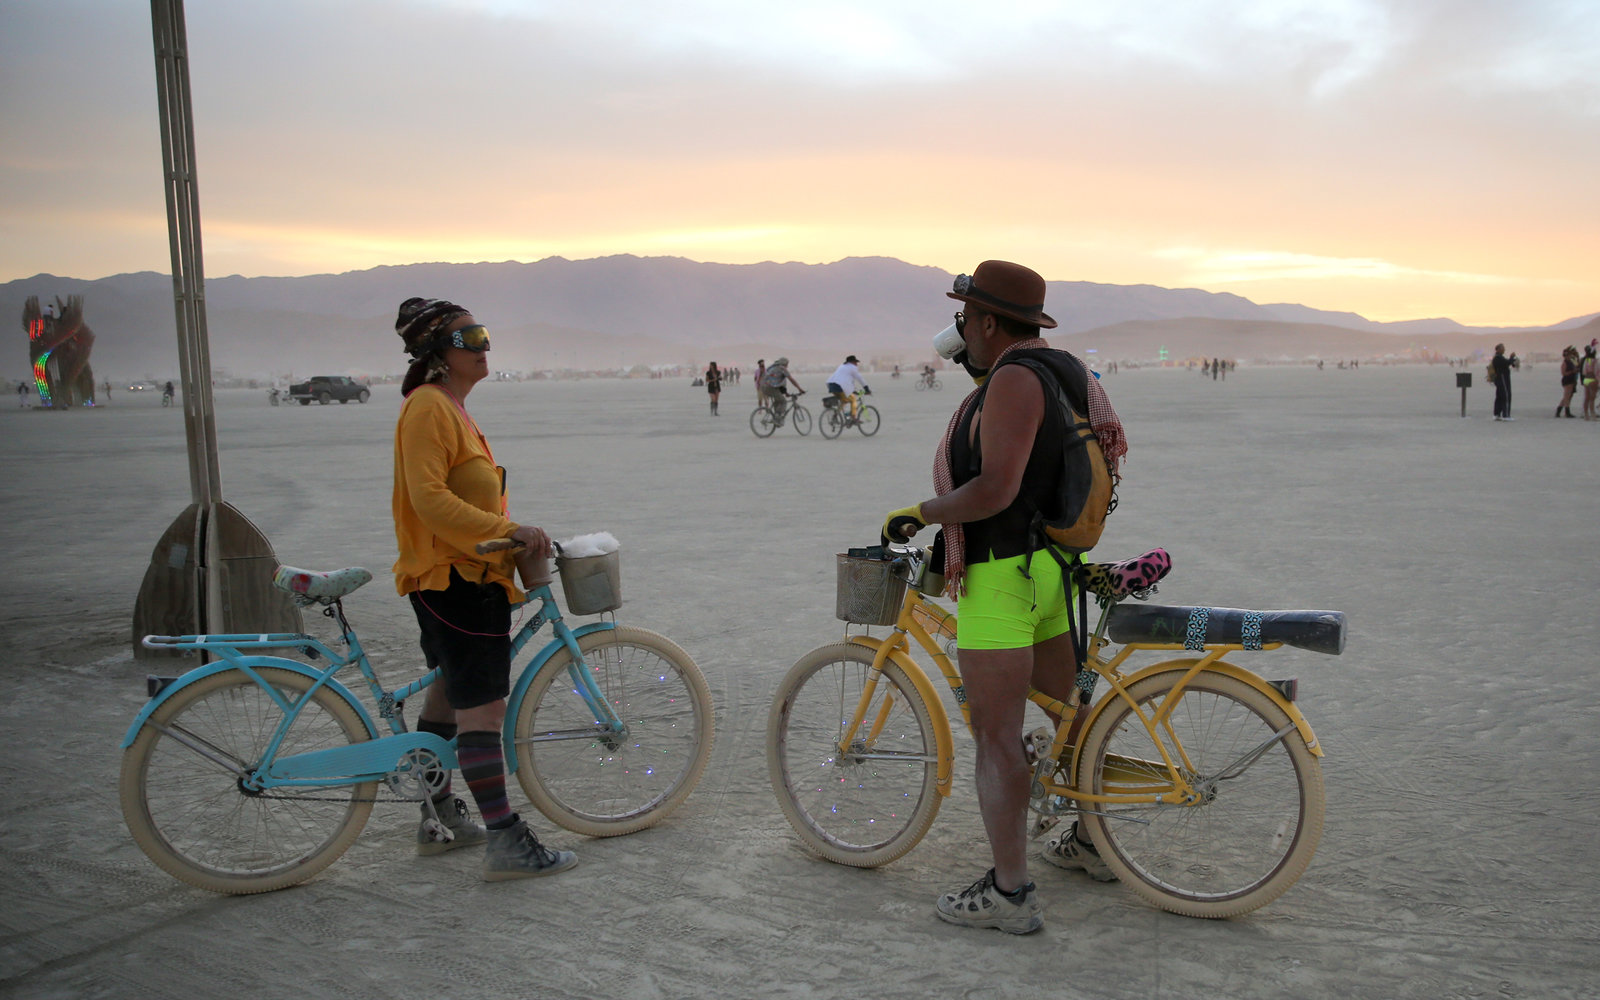 What It Was Like to Go to Burning Man With My Parents